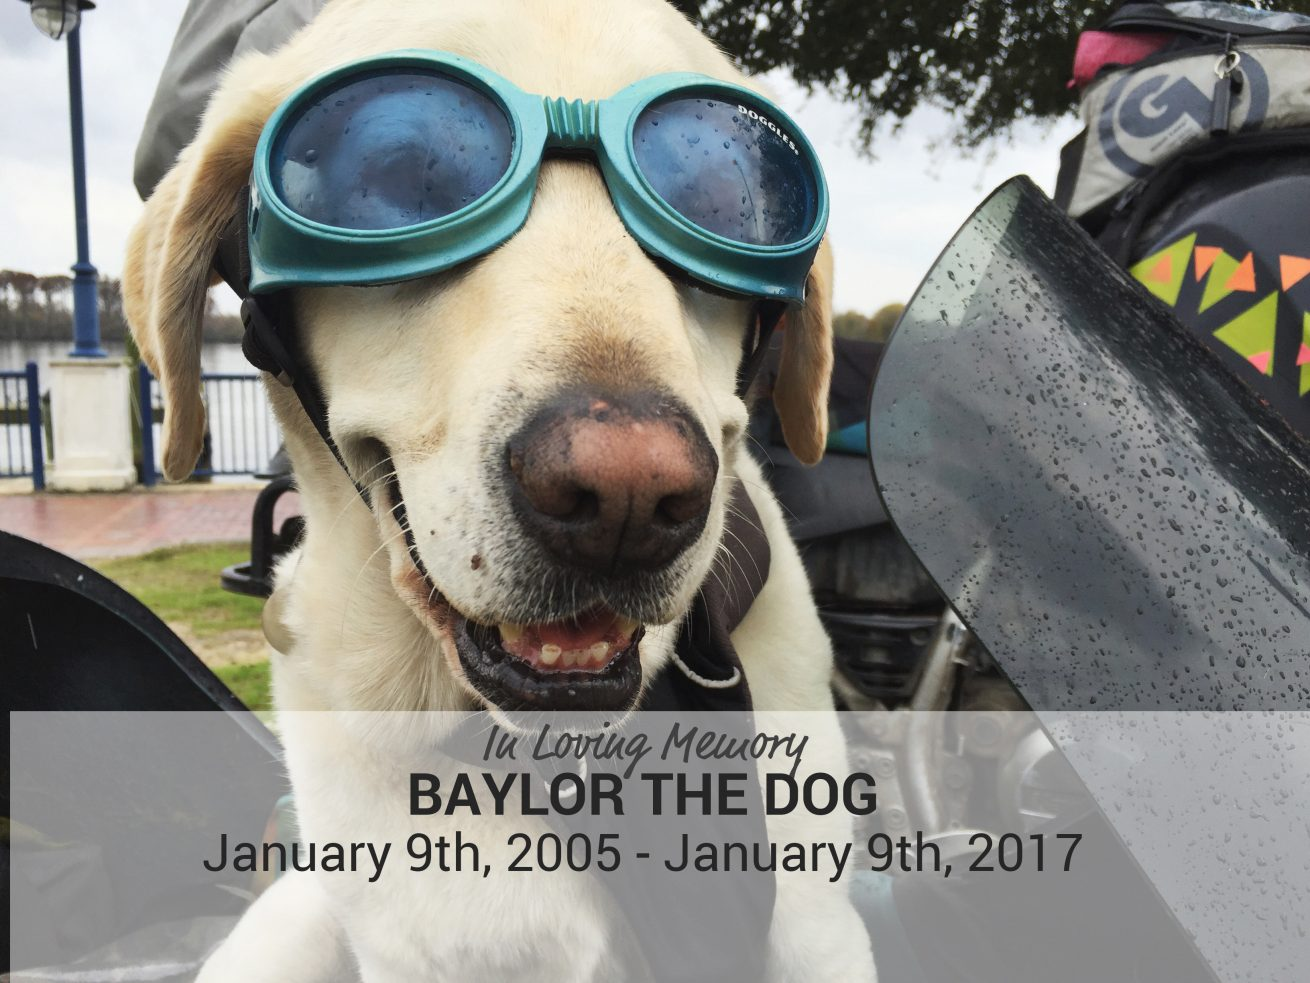 In Loving Memory of Baylor the Dog